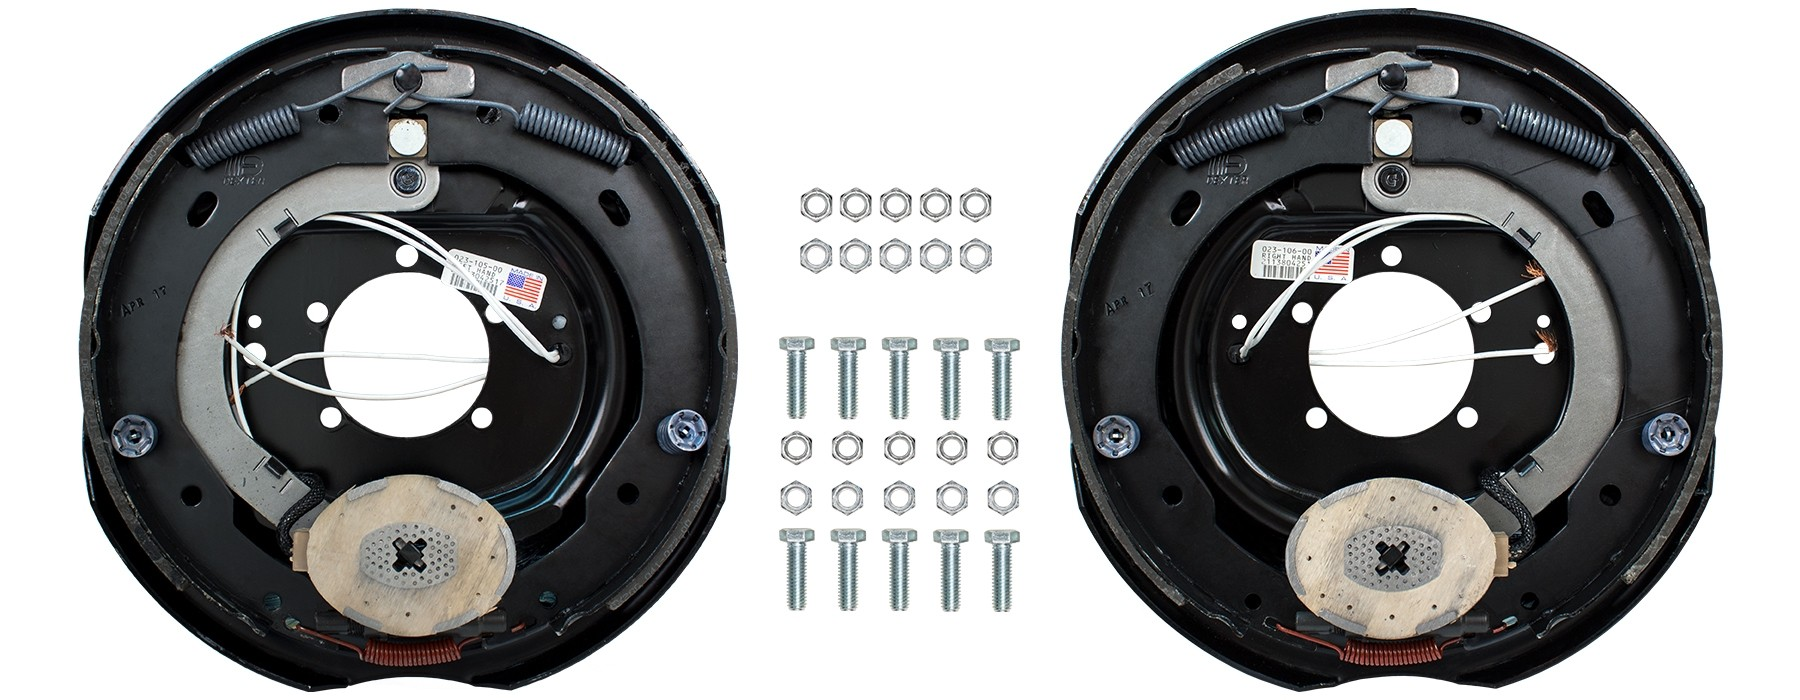 "Dexter 12"" x 2"" Electric Trailer Brake Kit - Left & Right Hand Assemblies - 6,000 lbs. Per Pair"